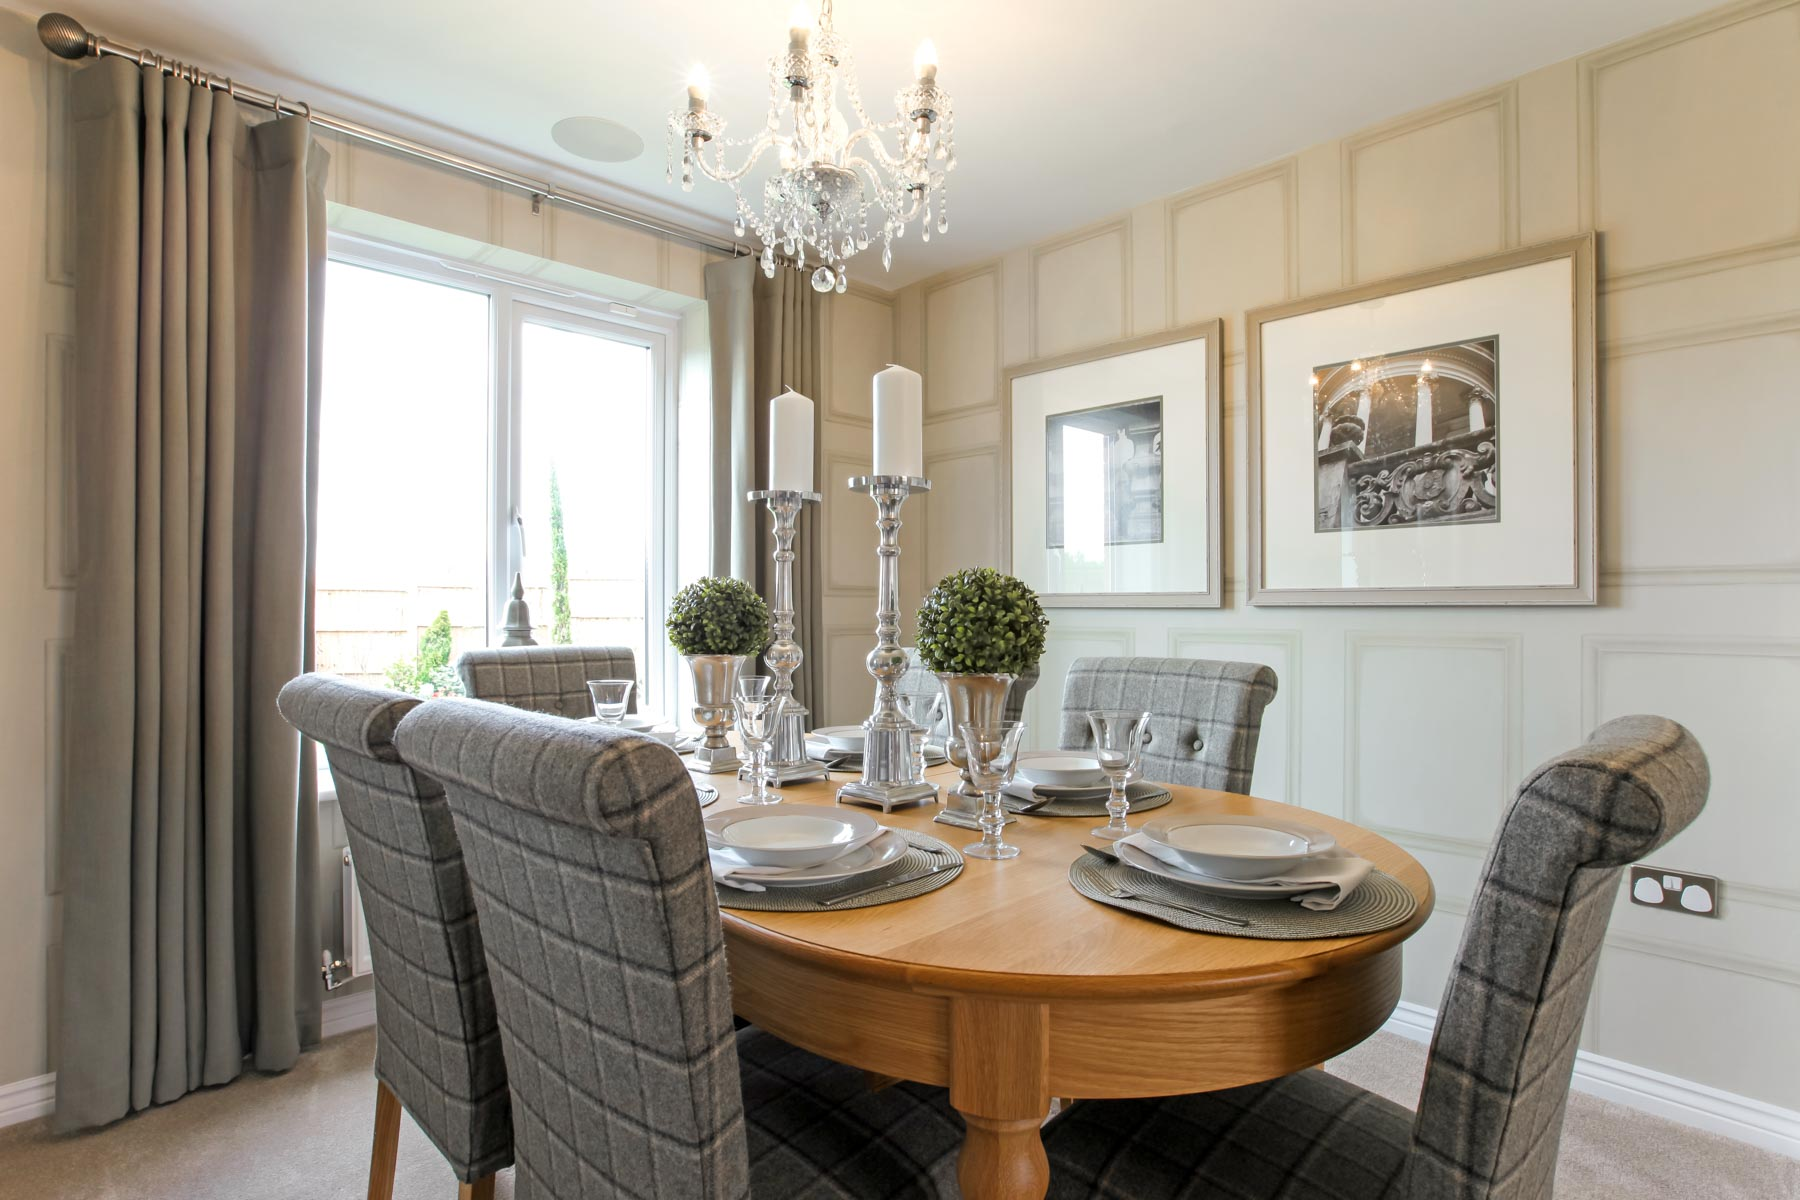 012_PW_Eynsham_Dining_Room